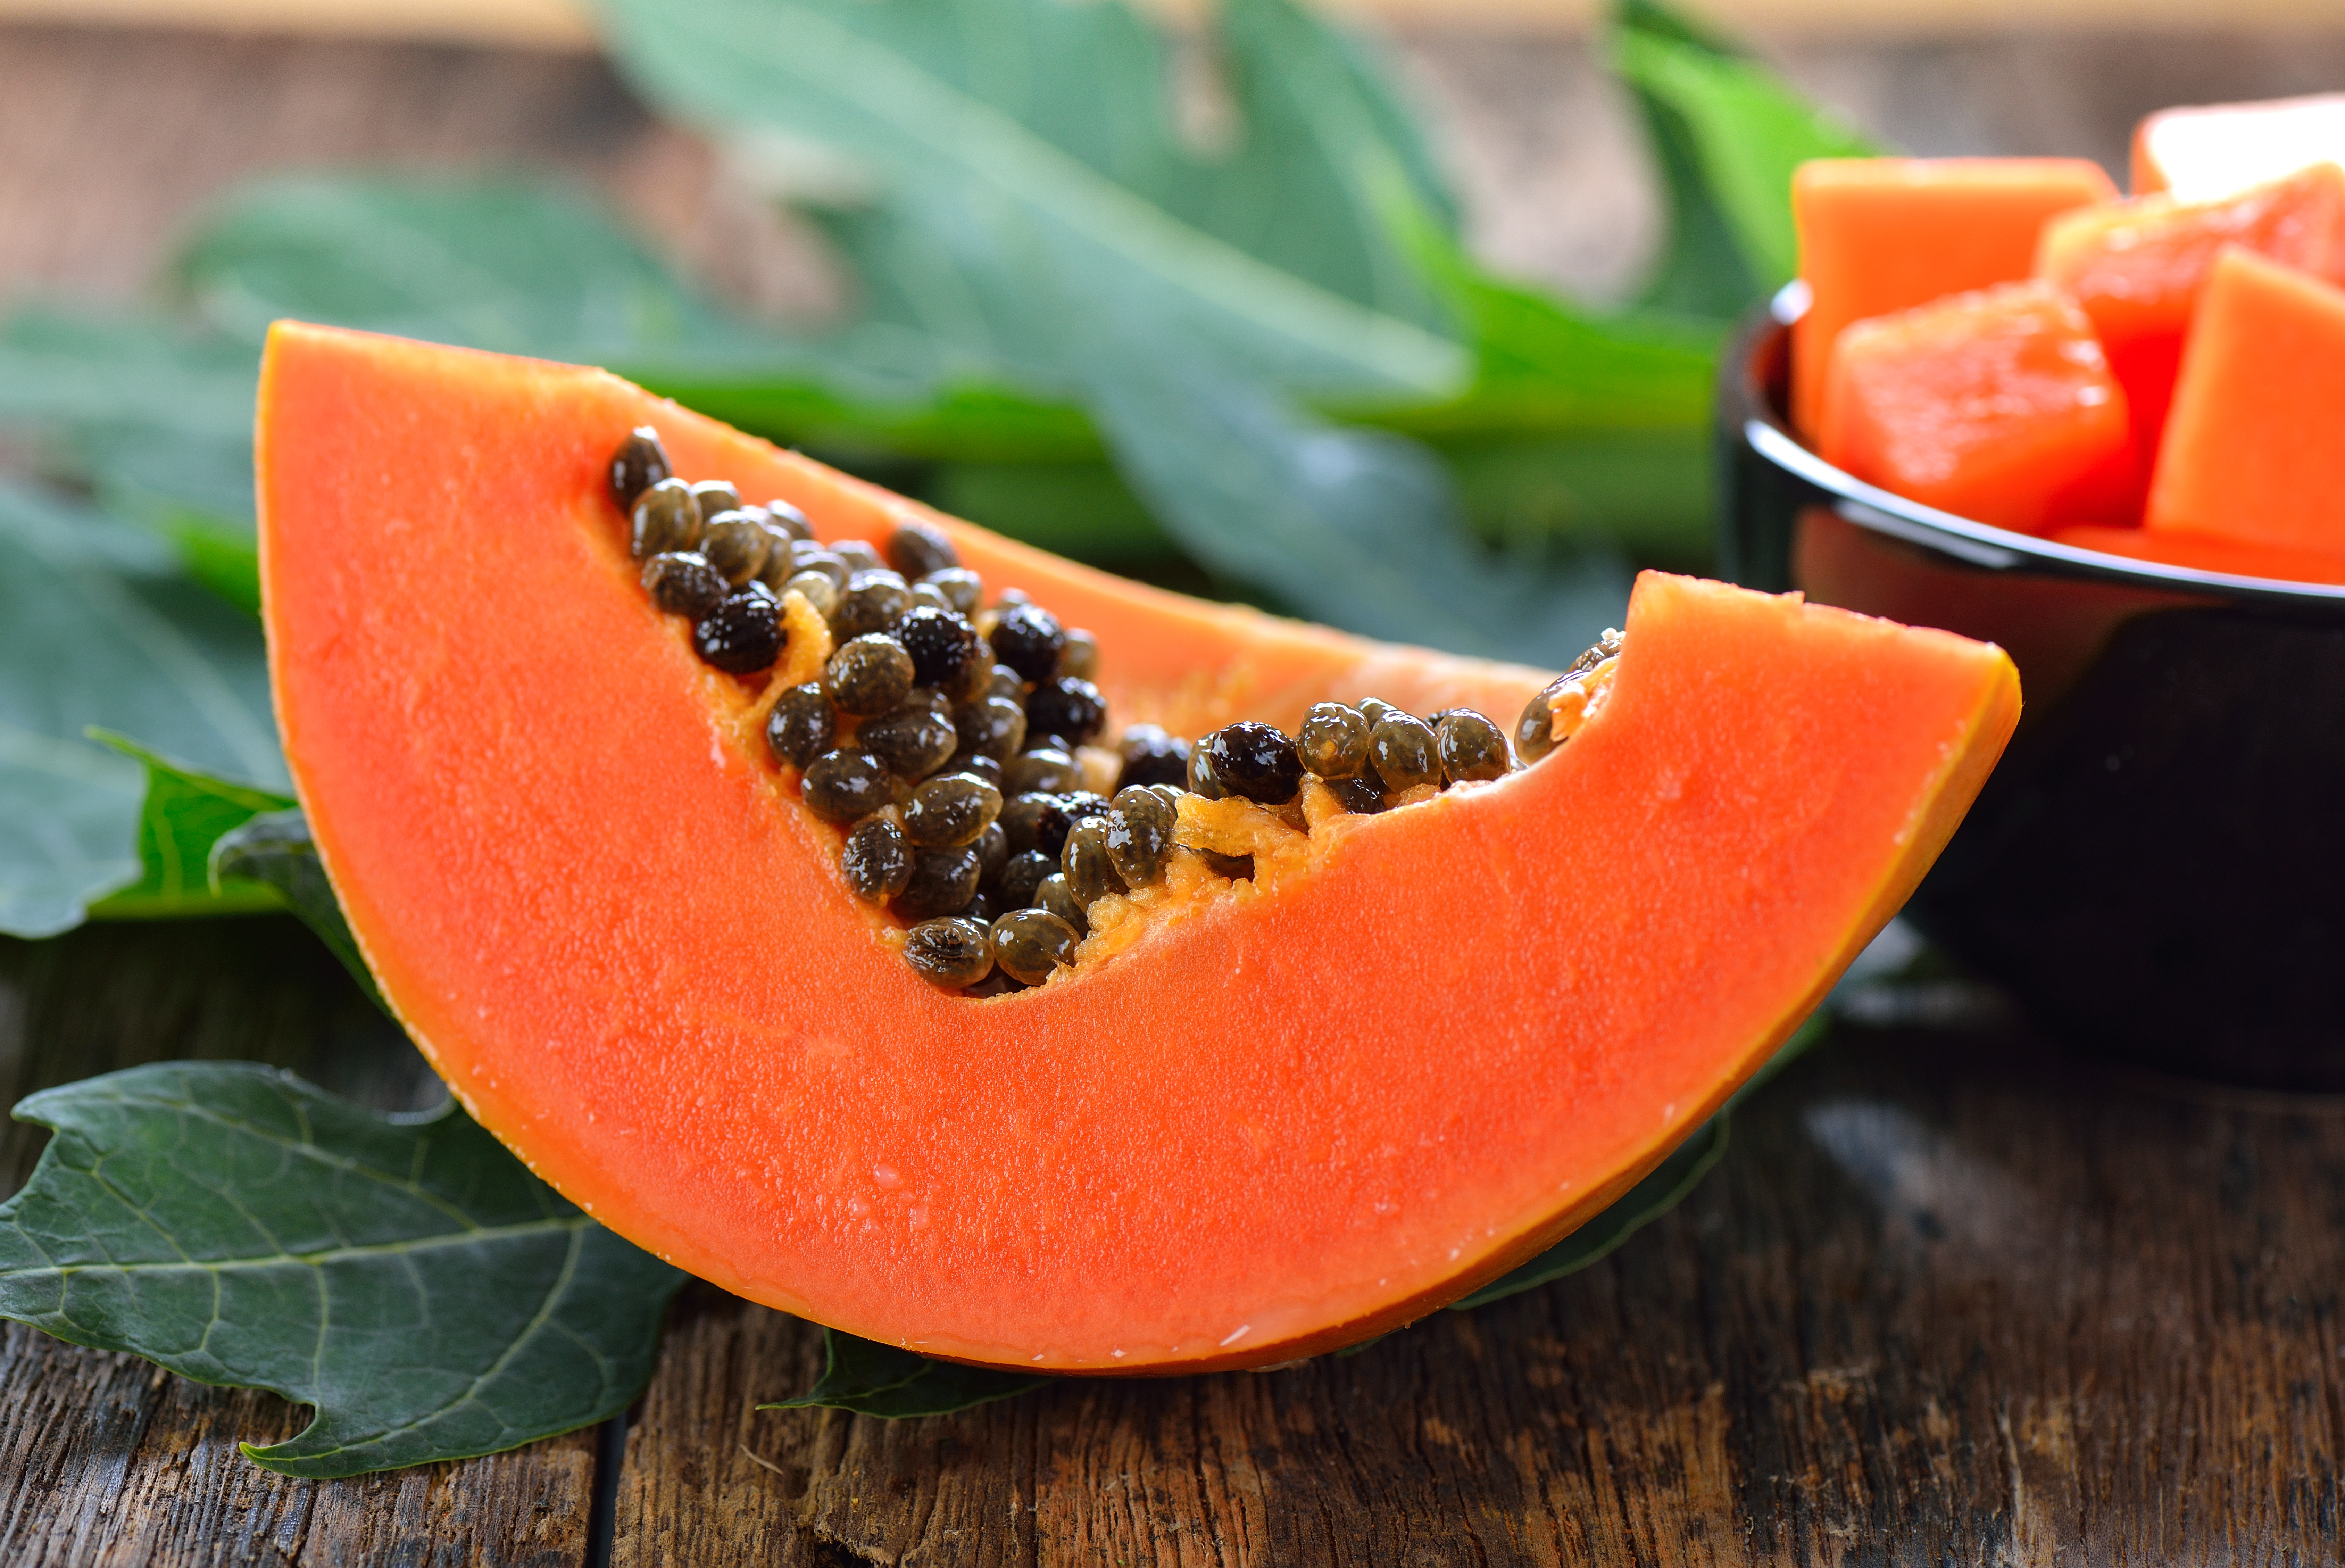 What Kind of Fertilizer for Papaya? | Home Guides | SF Gate